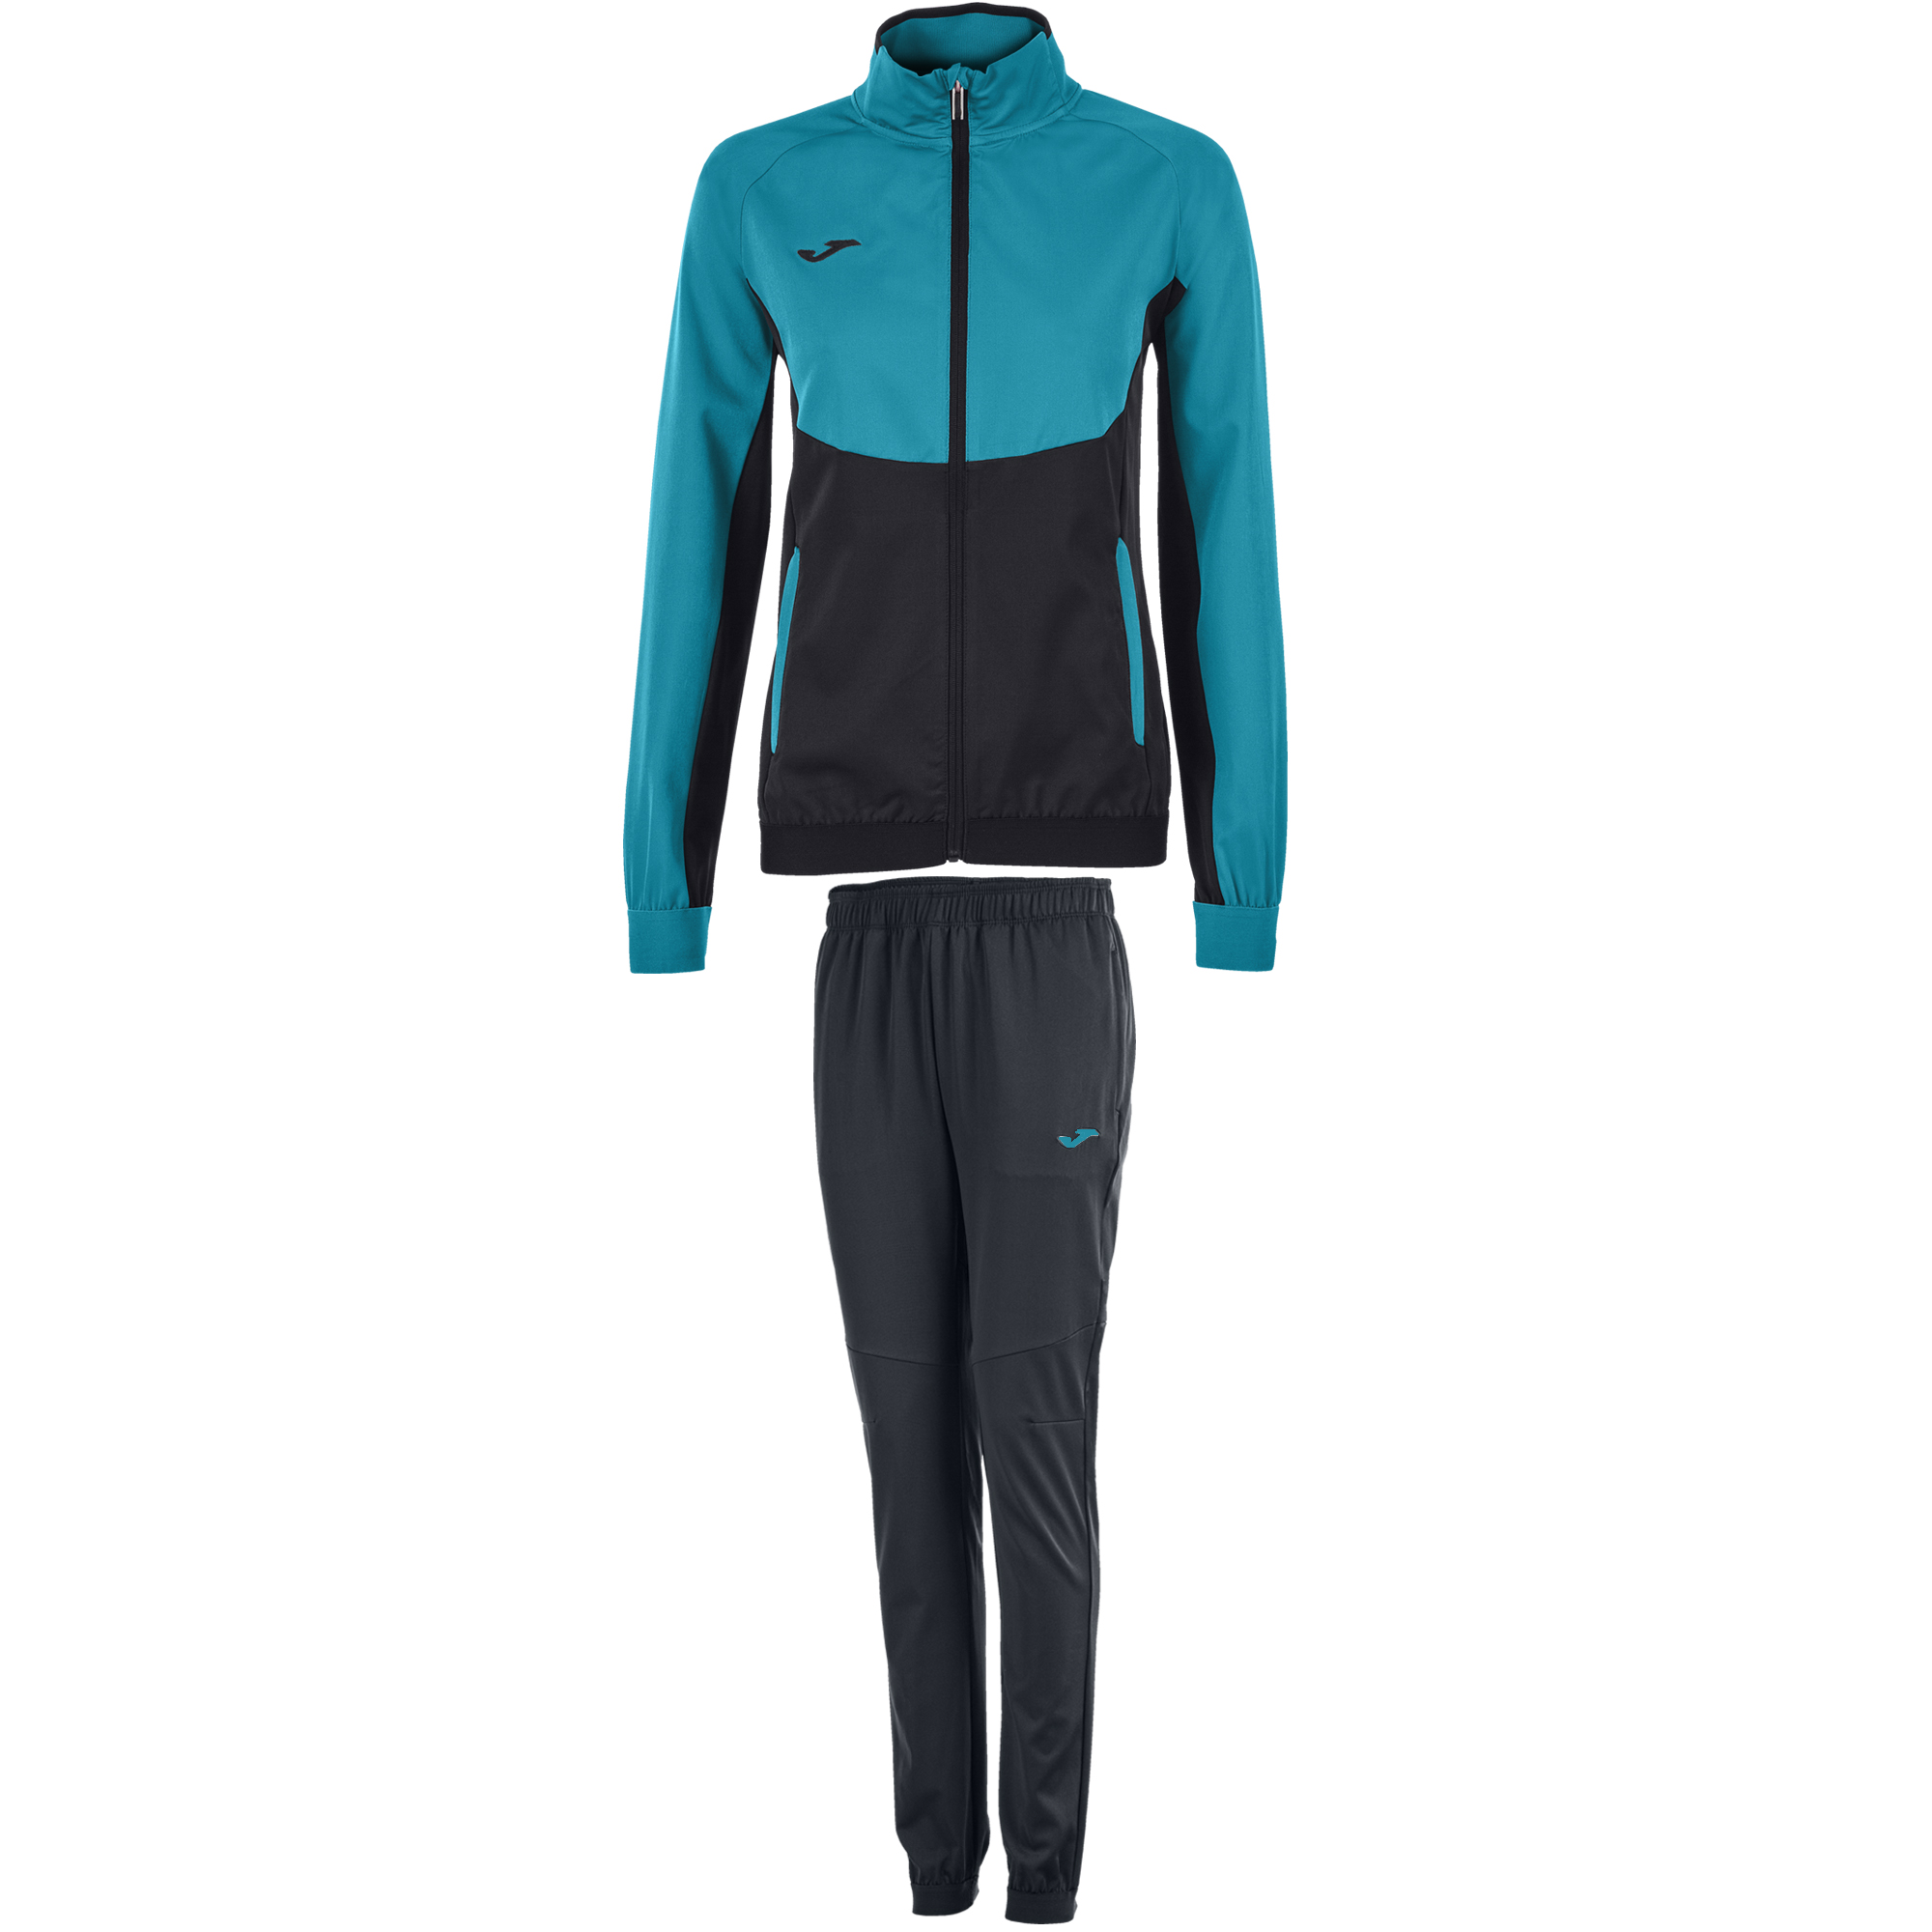 1b8ecf8e3efe TRACKSUIT ESSENTIAL MICROFIBER BLACK-TURQUOISE WOMEN - 1